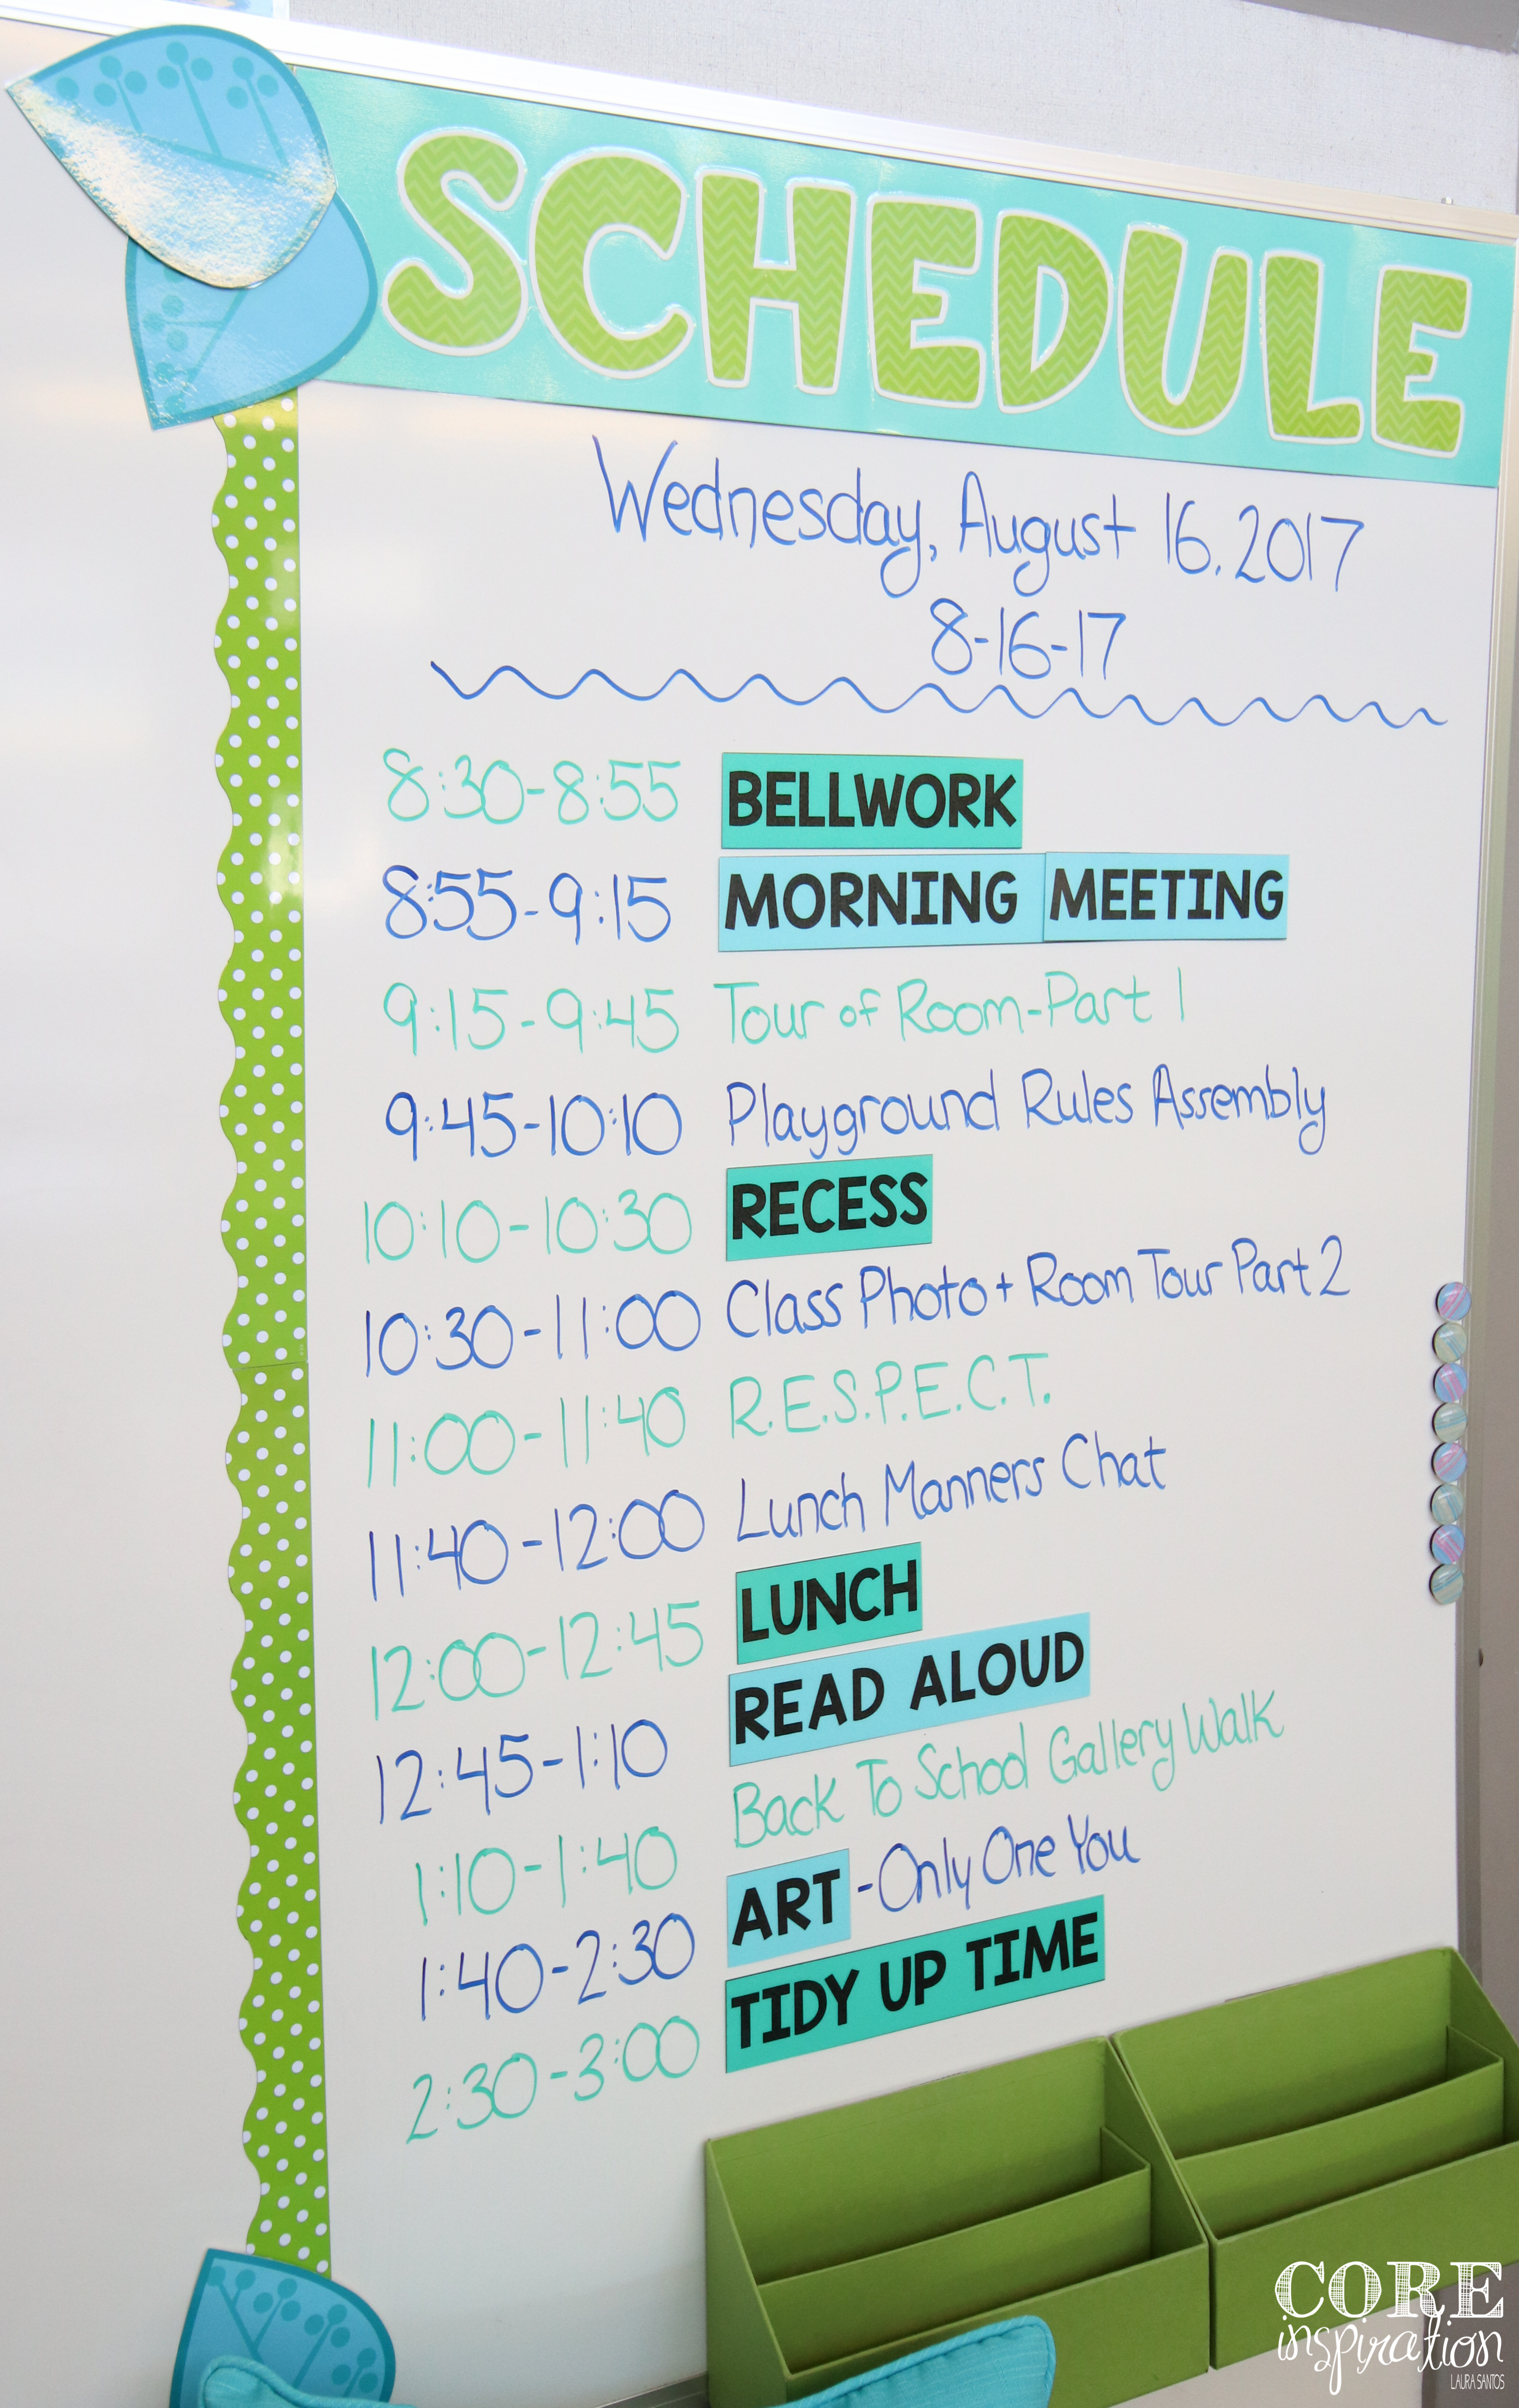 Consistent schedule displayed on classroom board.